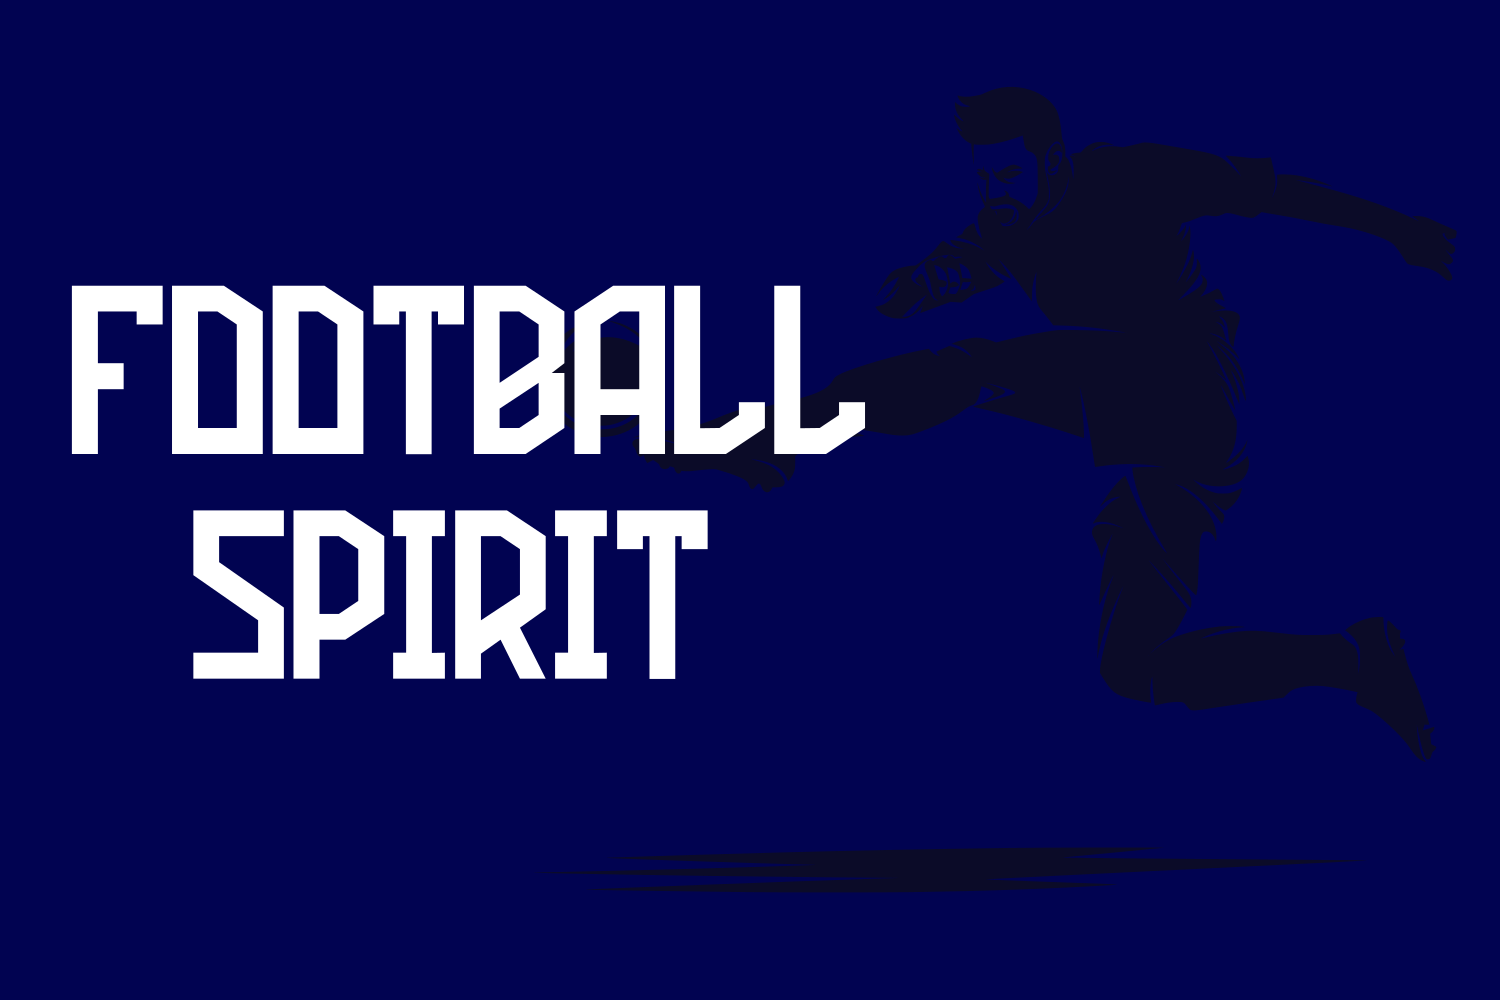 Football Attack example image 2